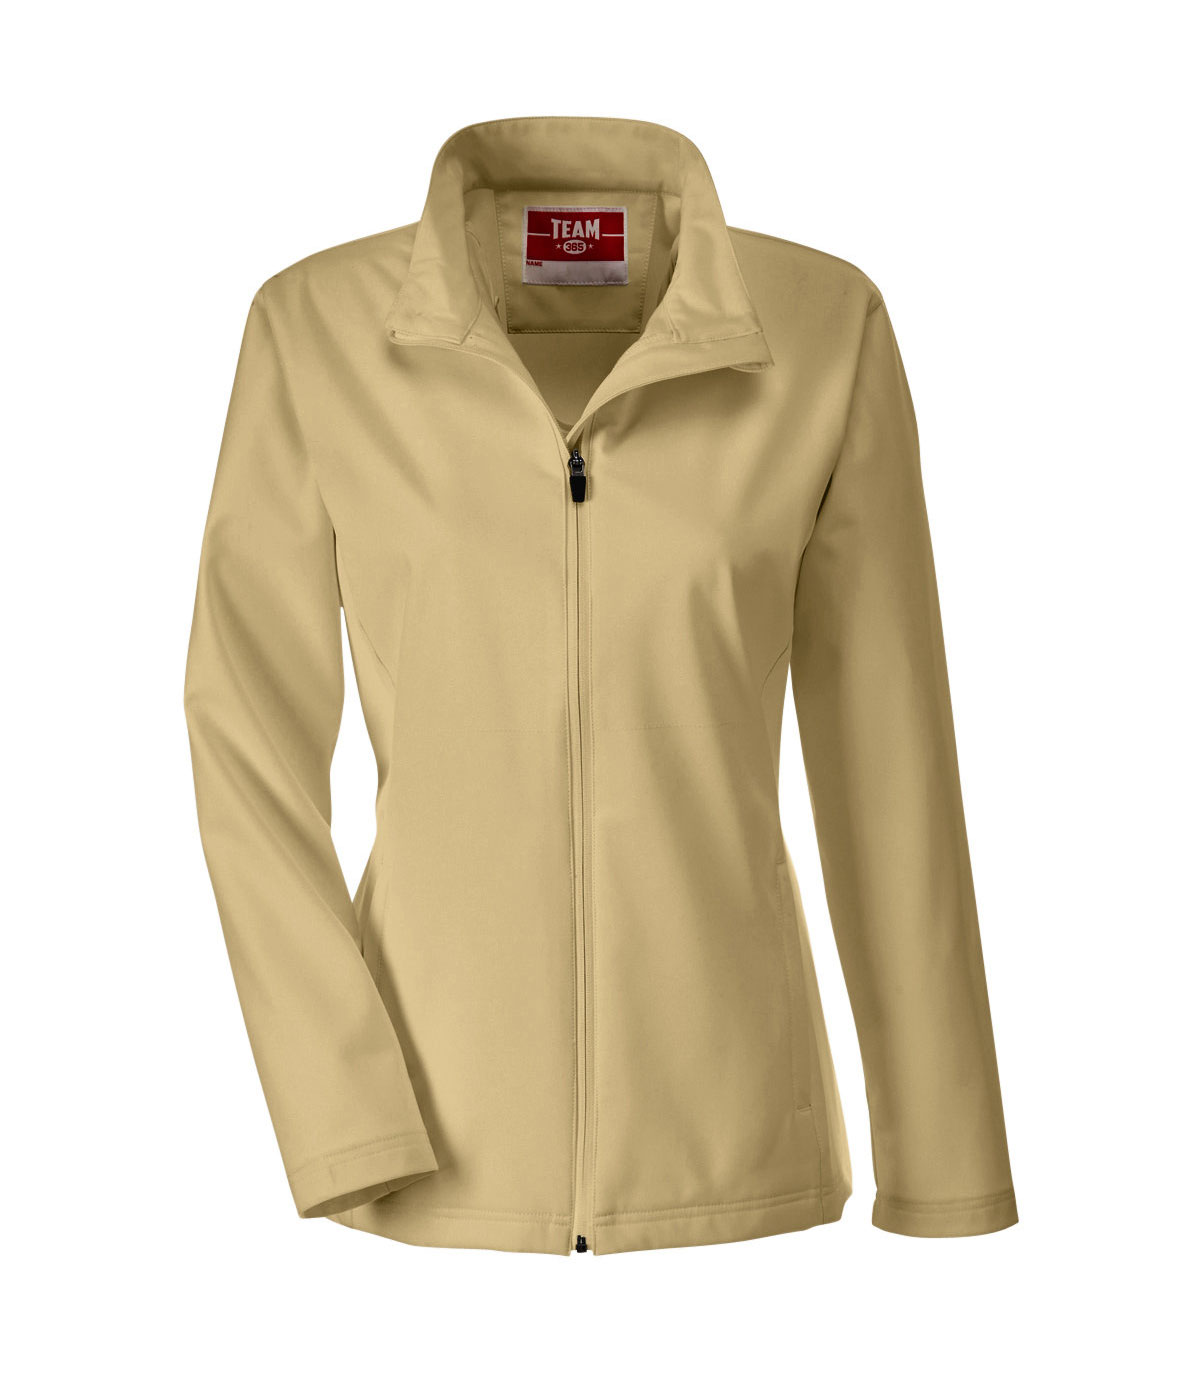 Team 365 Ladies Leader Soft Shell Jacket